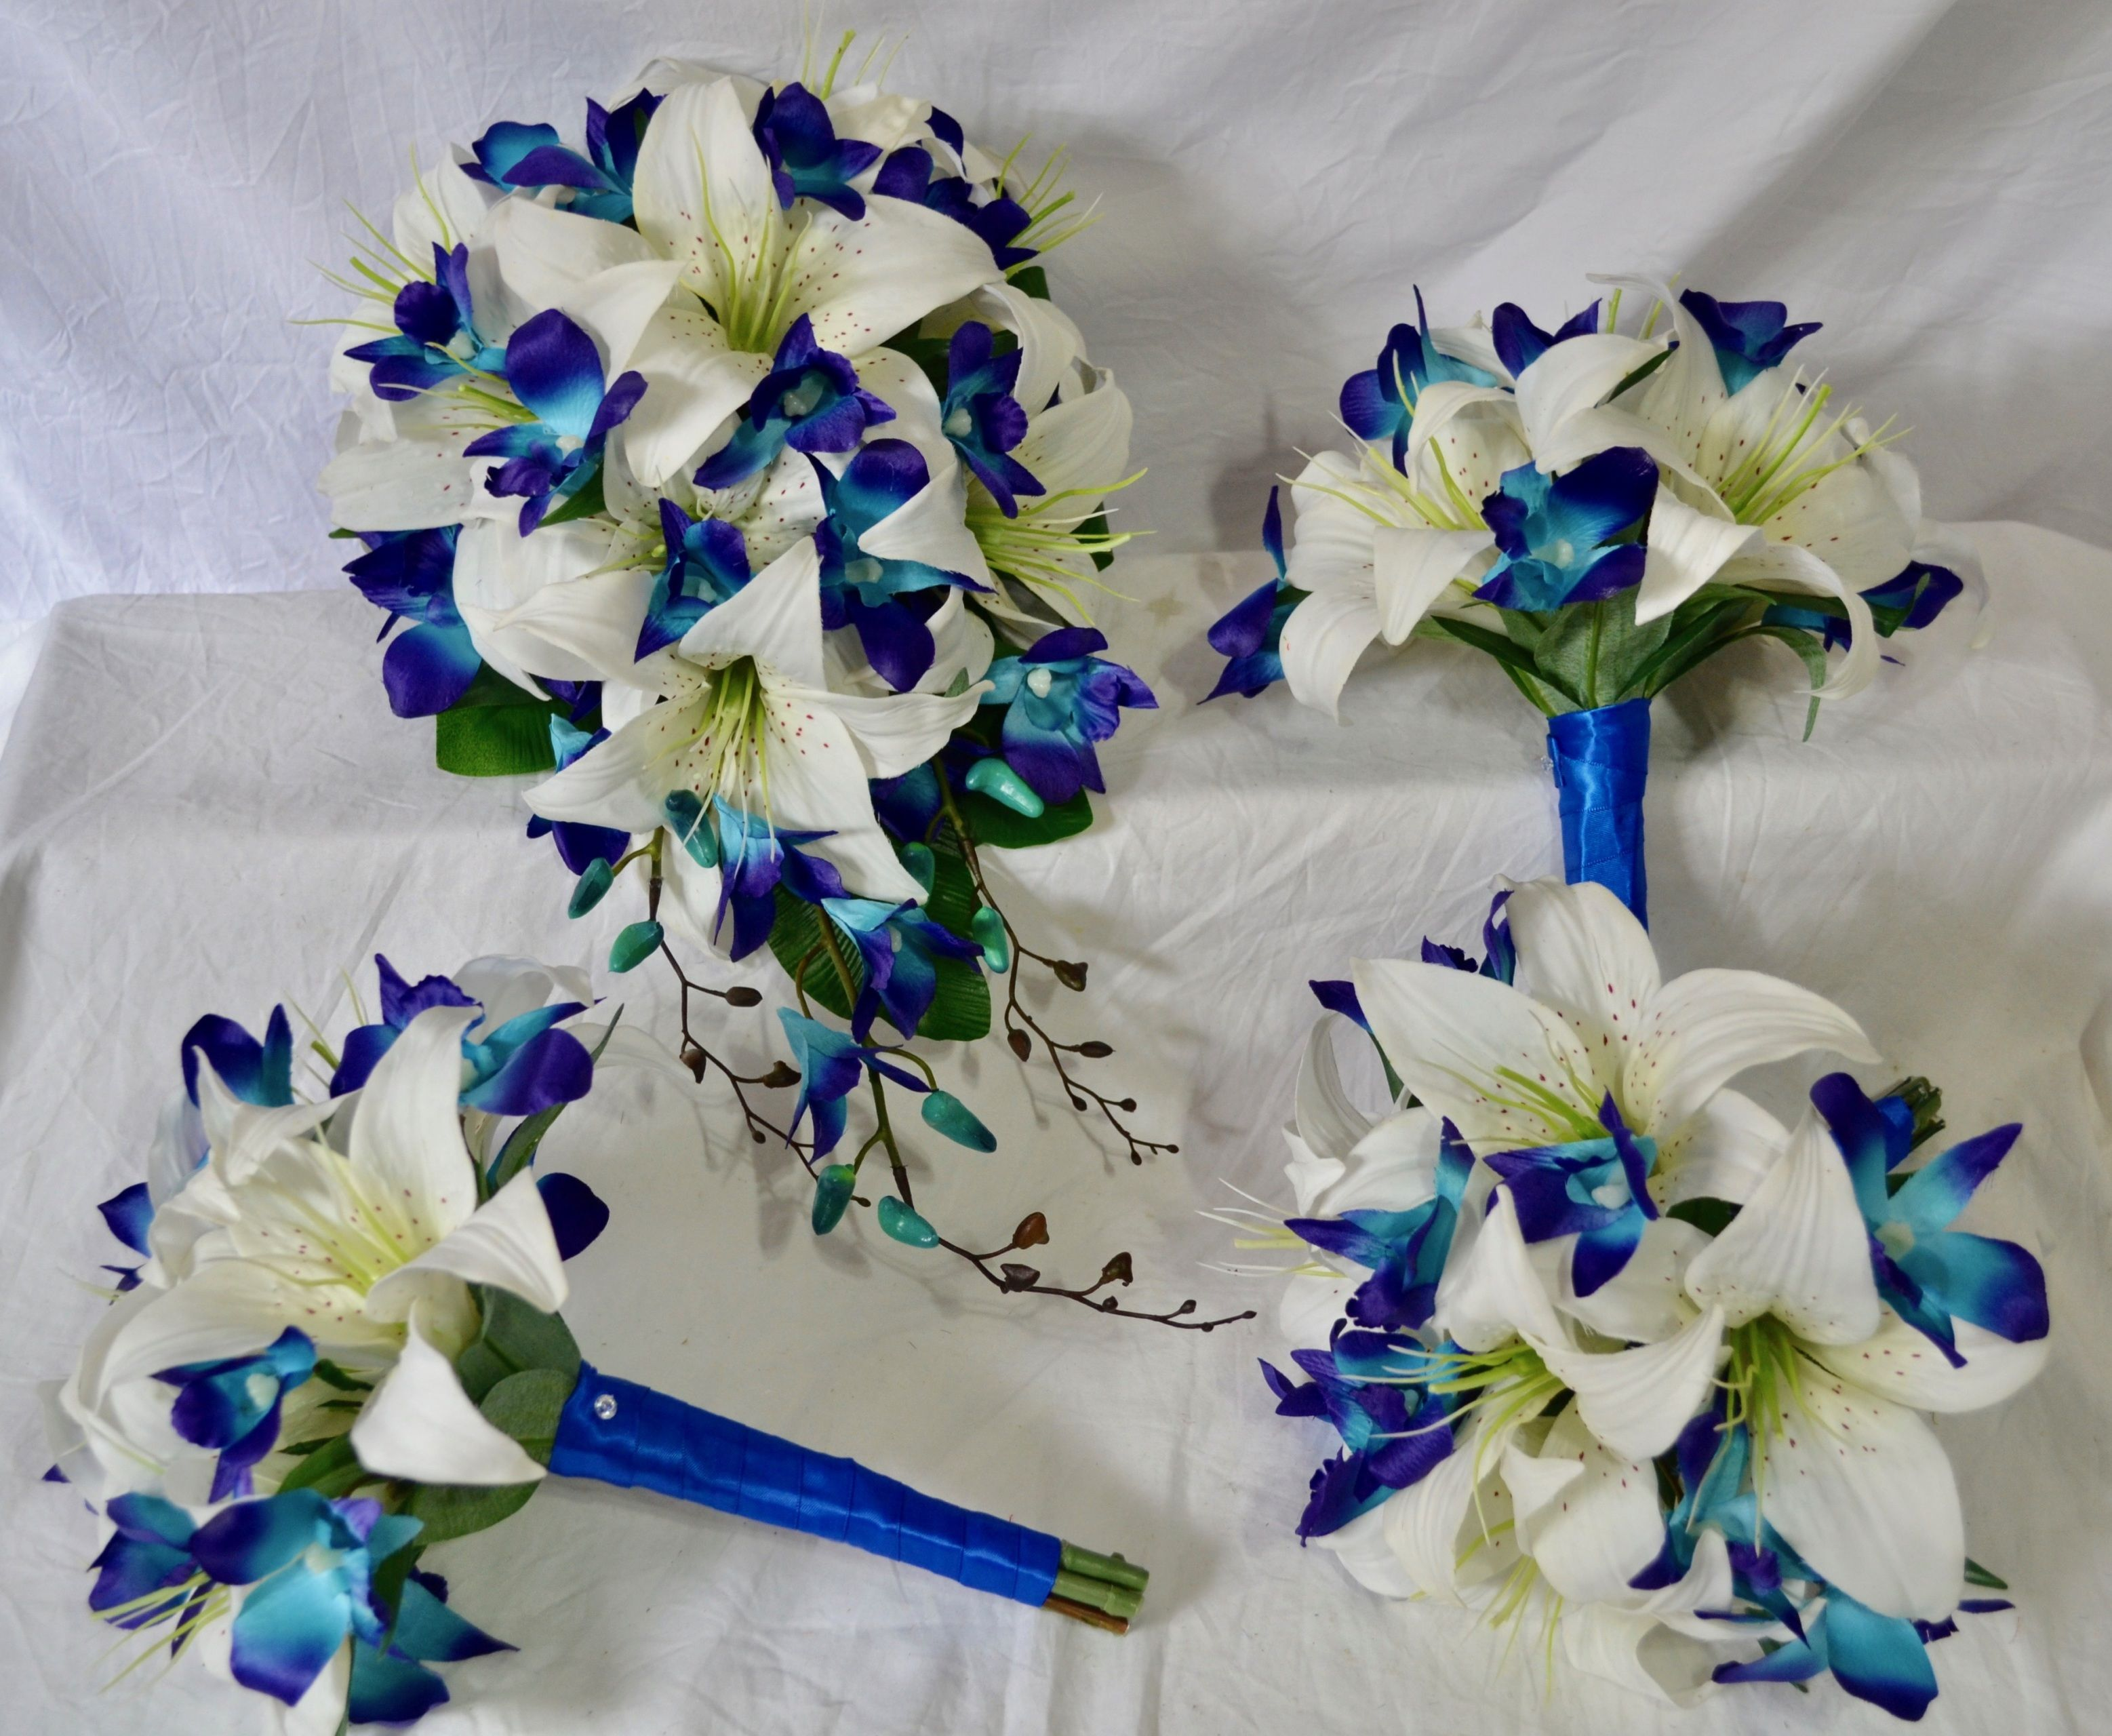 Just fake it bouquets australia use top quality silk flowers and just fake it bouquets australia use top quality silk flowers and real touch artificial wedding flowers realistic life like artificial bridal bouquets for mightylinksfo